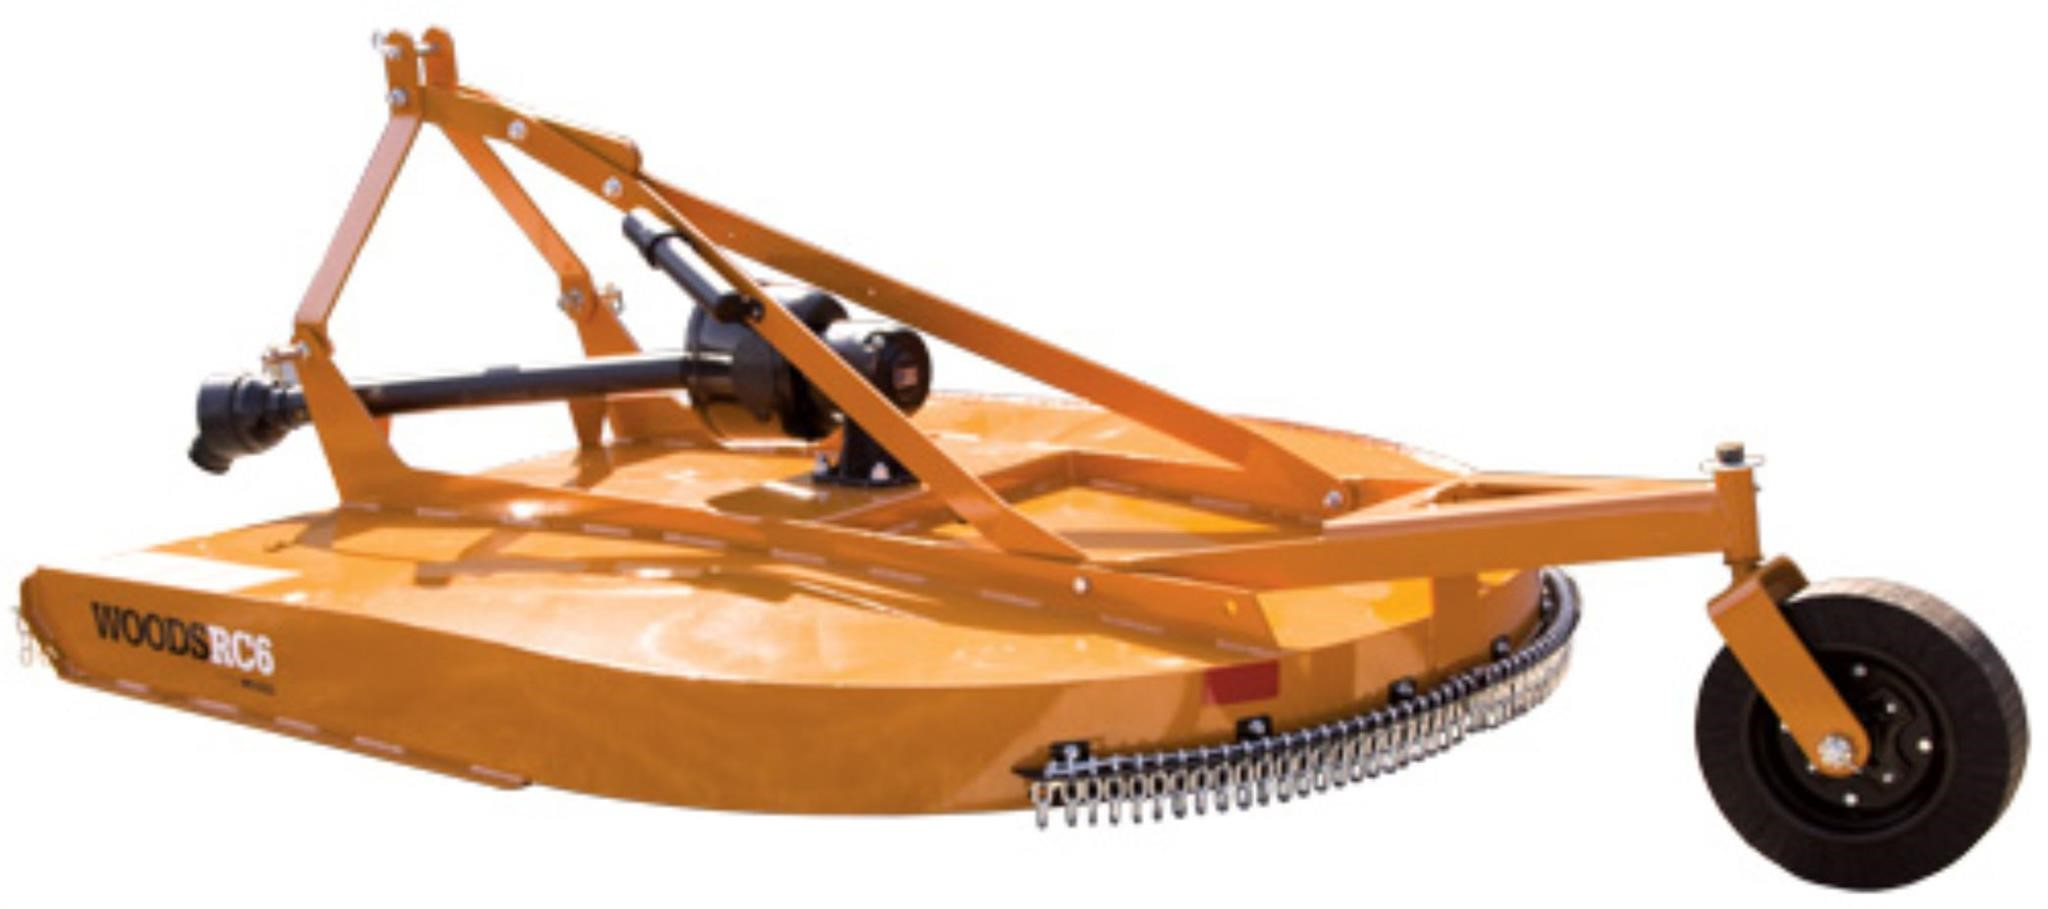 2021 Woods RC6 Rotary Cutter